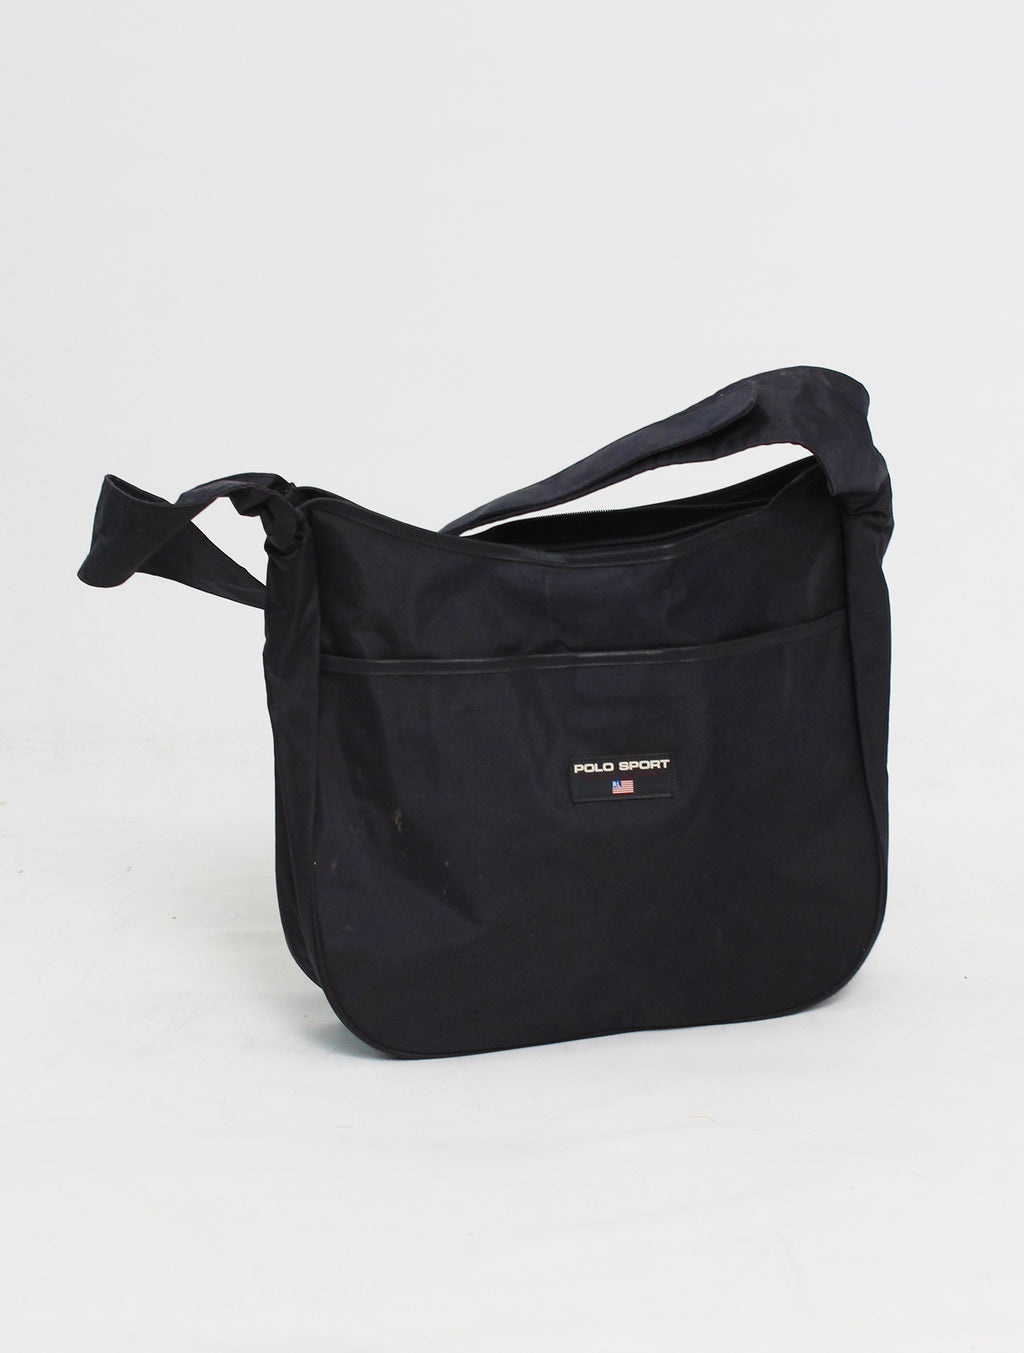 Ralph Lauren Polo Sport Shoulder Bag